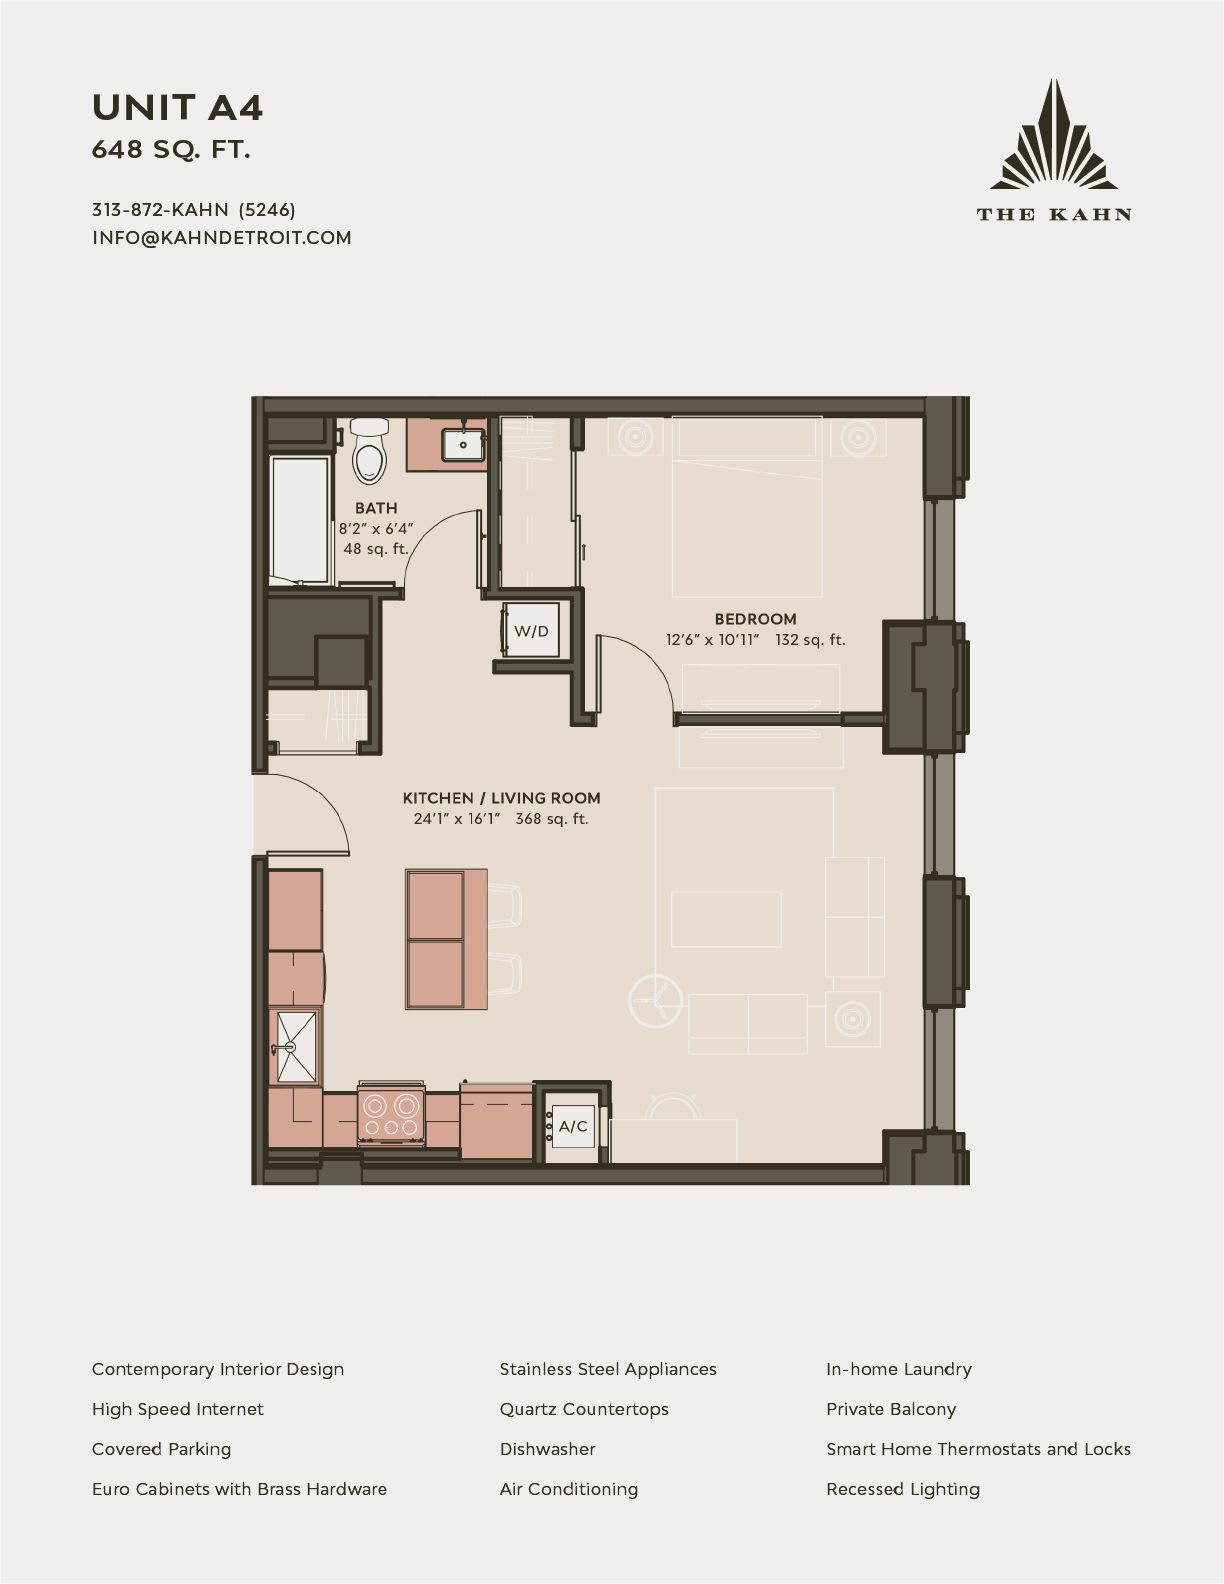 A4 floor plan image at The Kahn in Detroit, Michigan